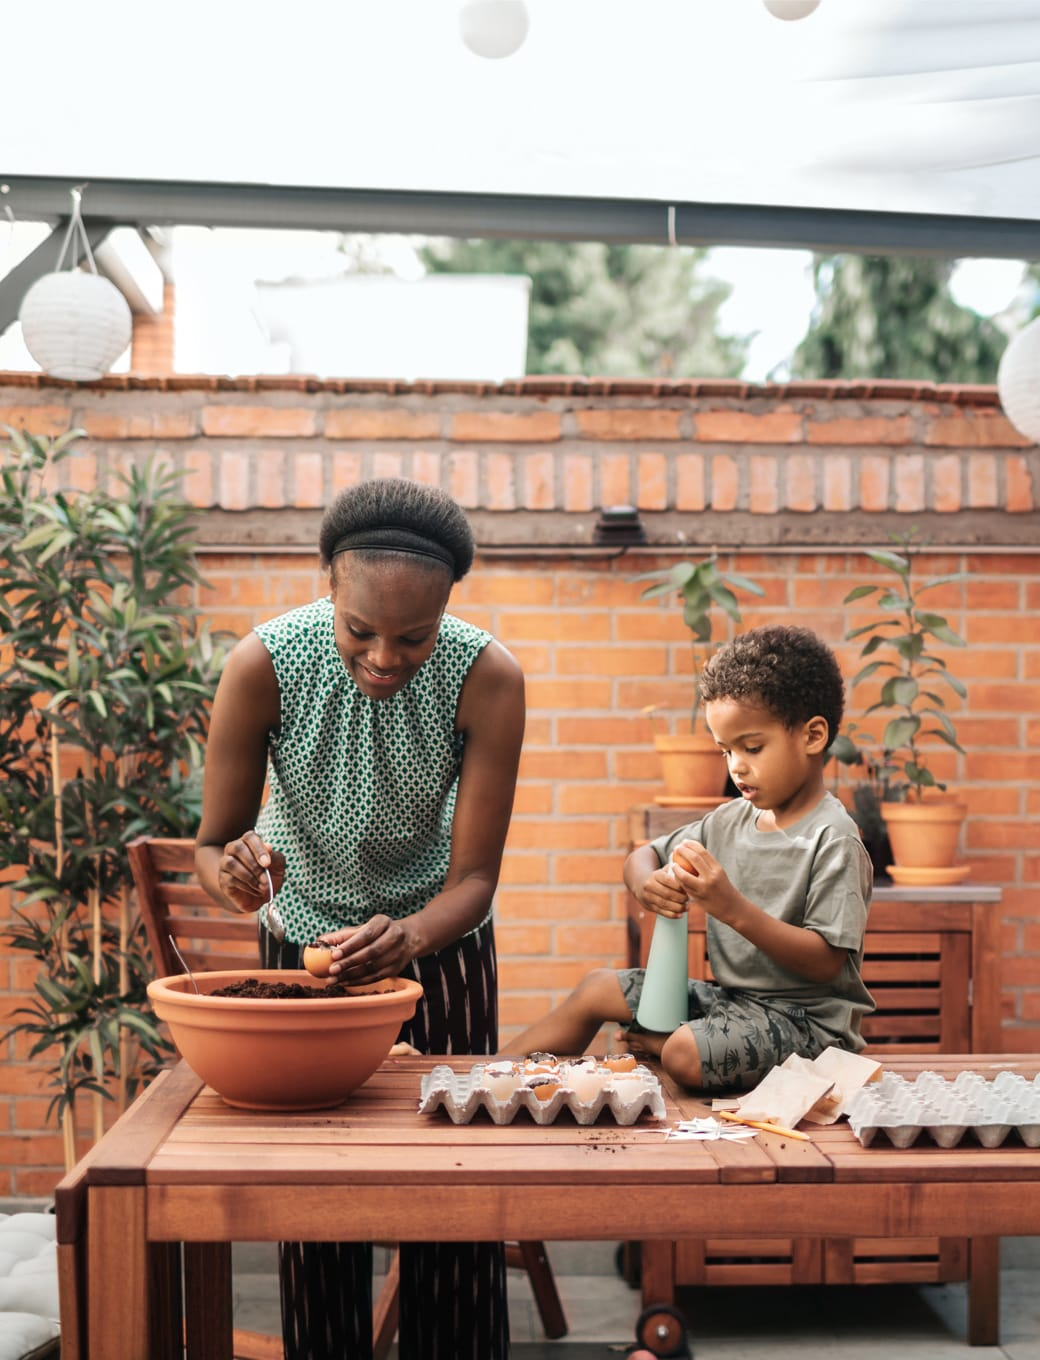 Image of a woman and child cooking.